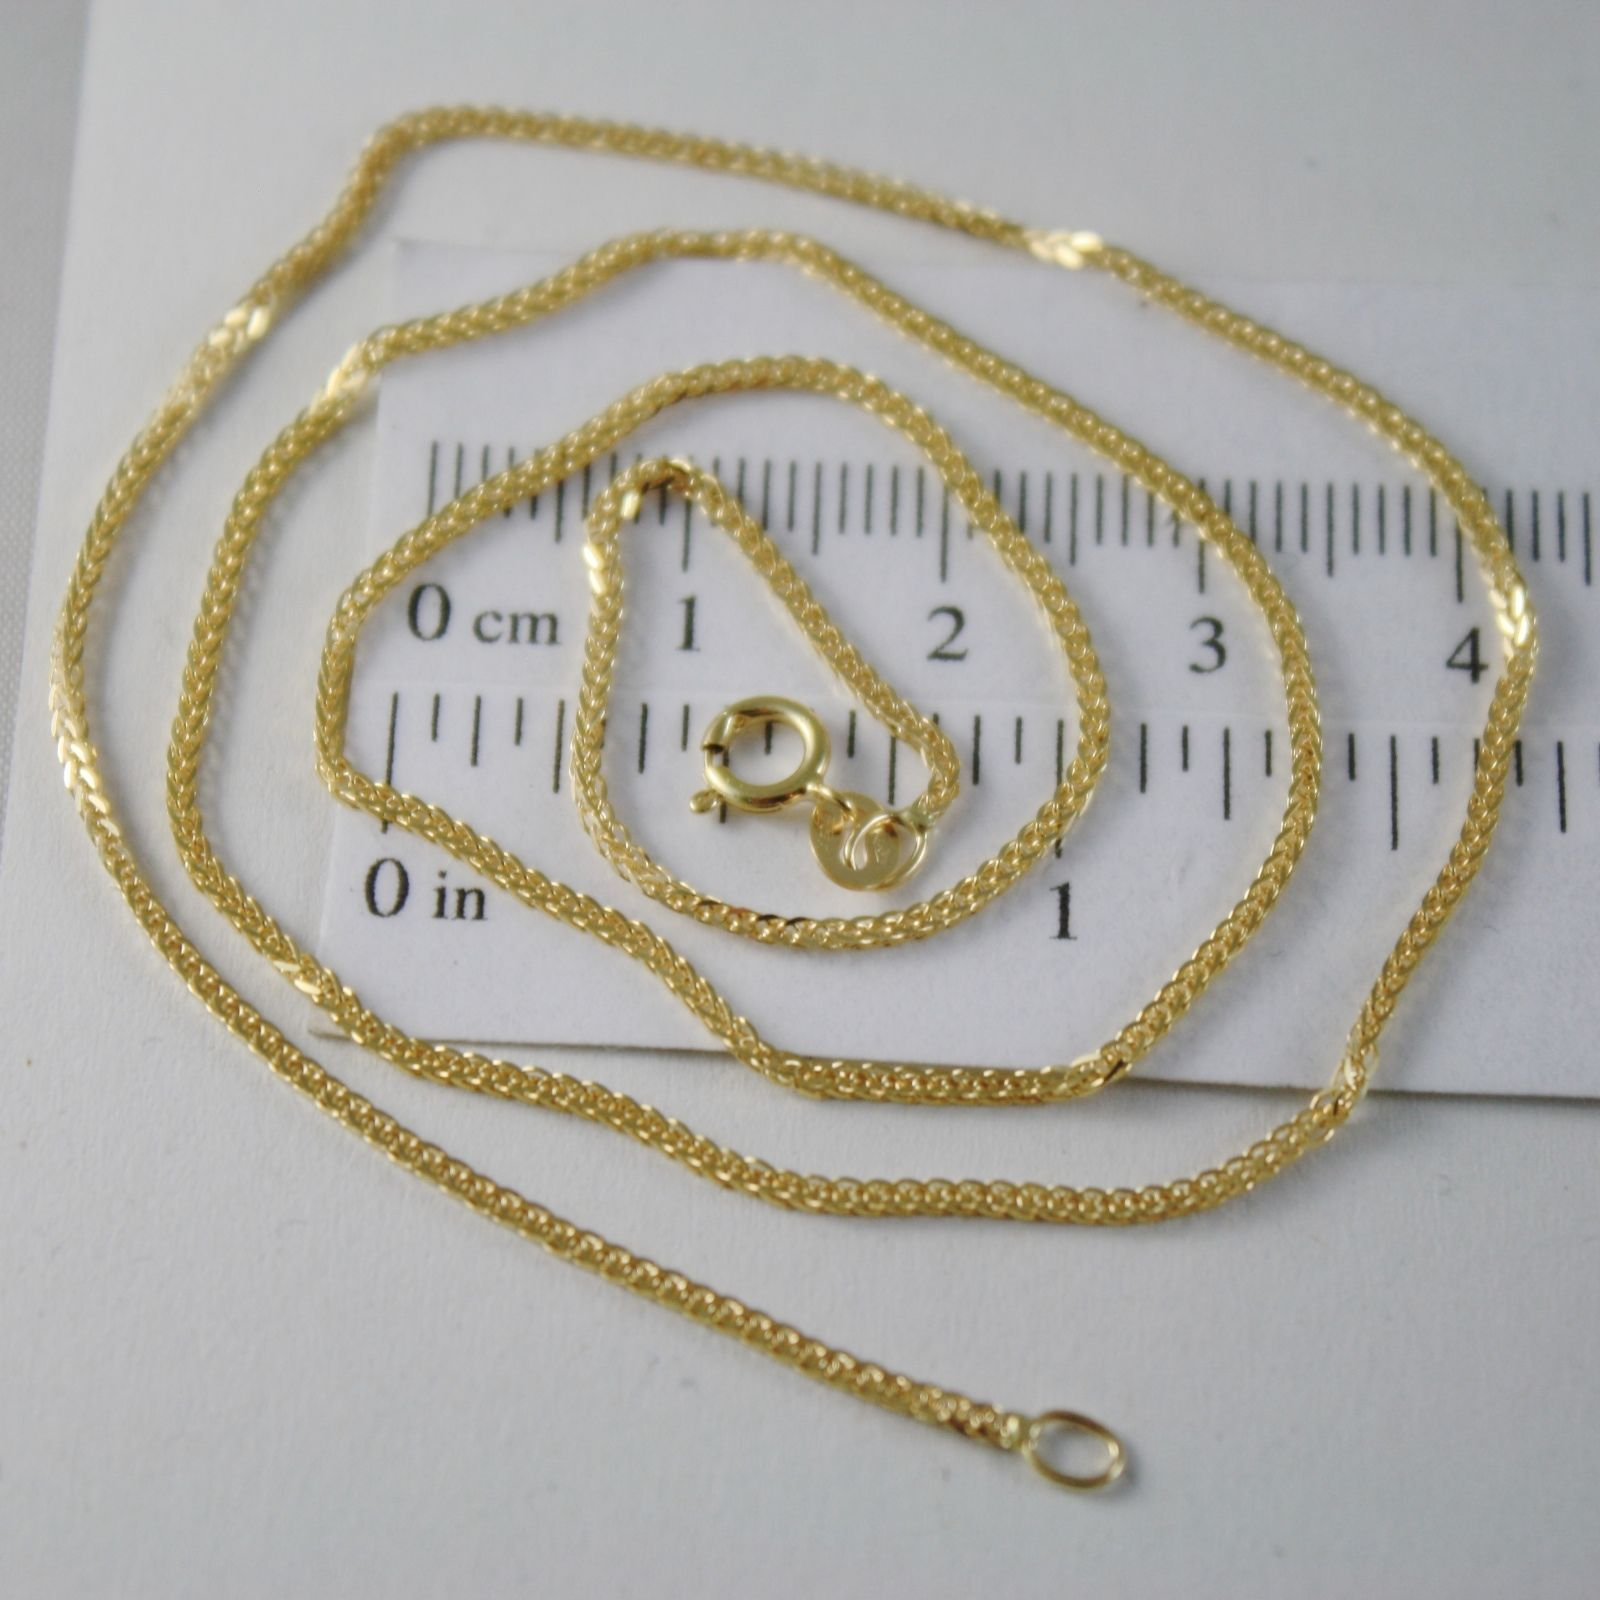 SOLID 18K YELLOW GOLD CHAIN NECKLACE 1.1 MM EAR LINK, 19.69 INCHES MADE IN ITALY